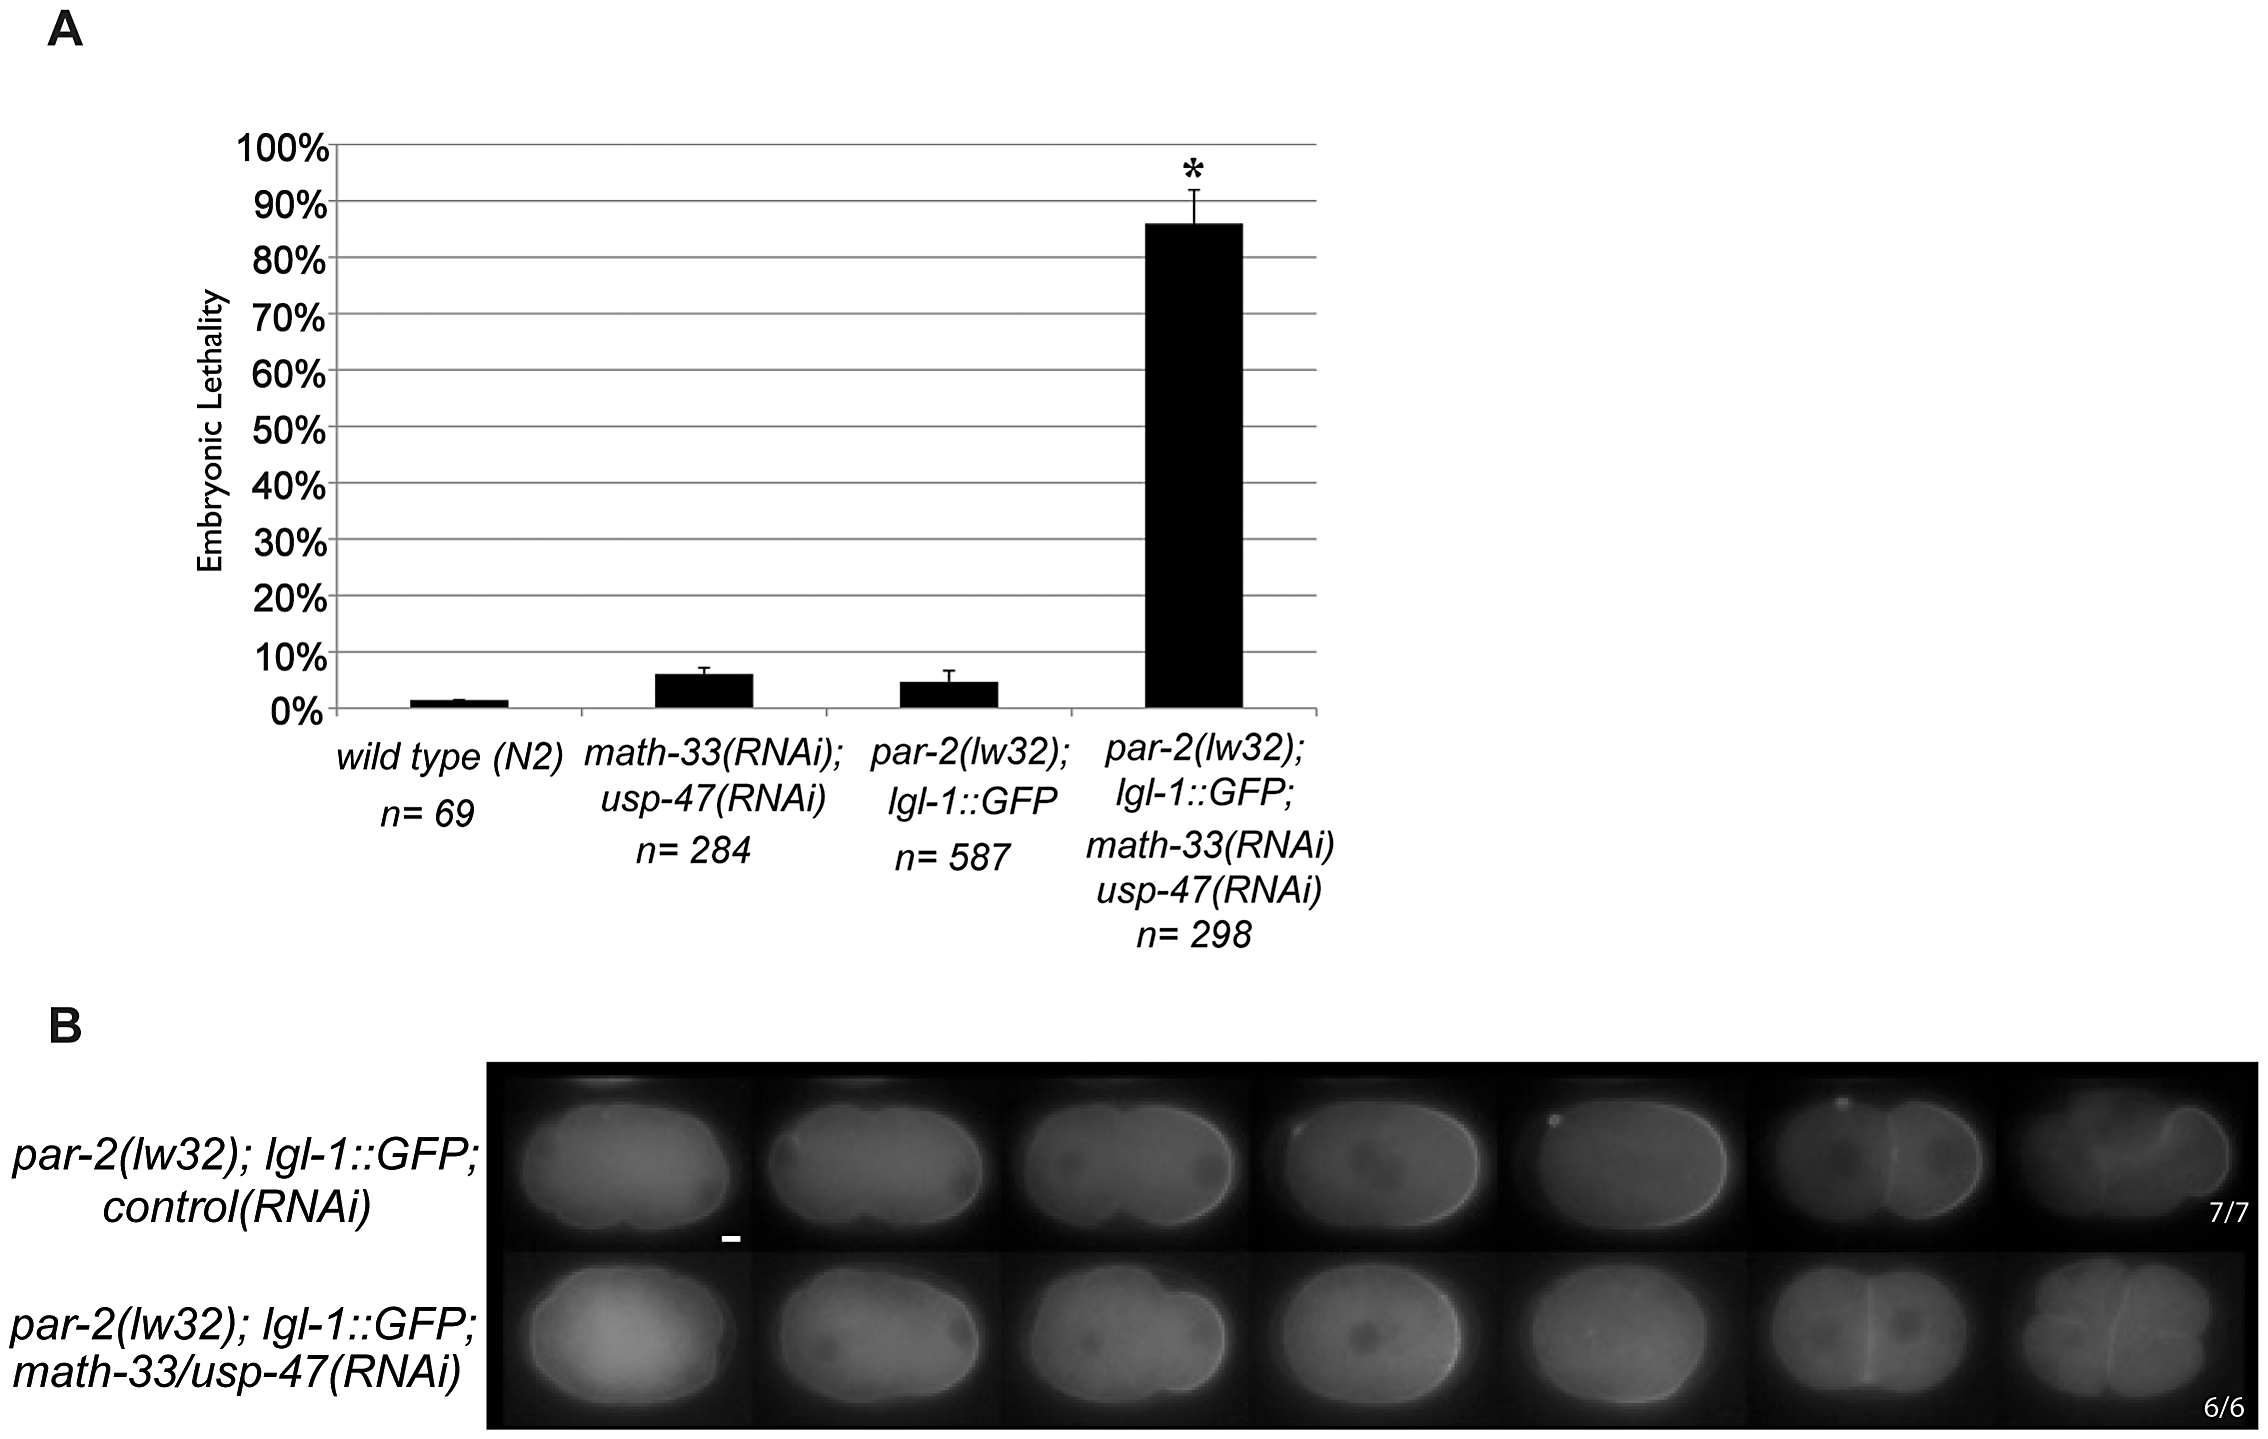 PAR-2 function is not required to mediate loss of polarity in <i>math-33(RNAi) usp-47(RNAi)</i>.